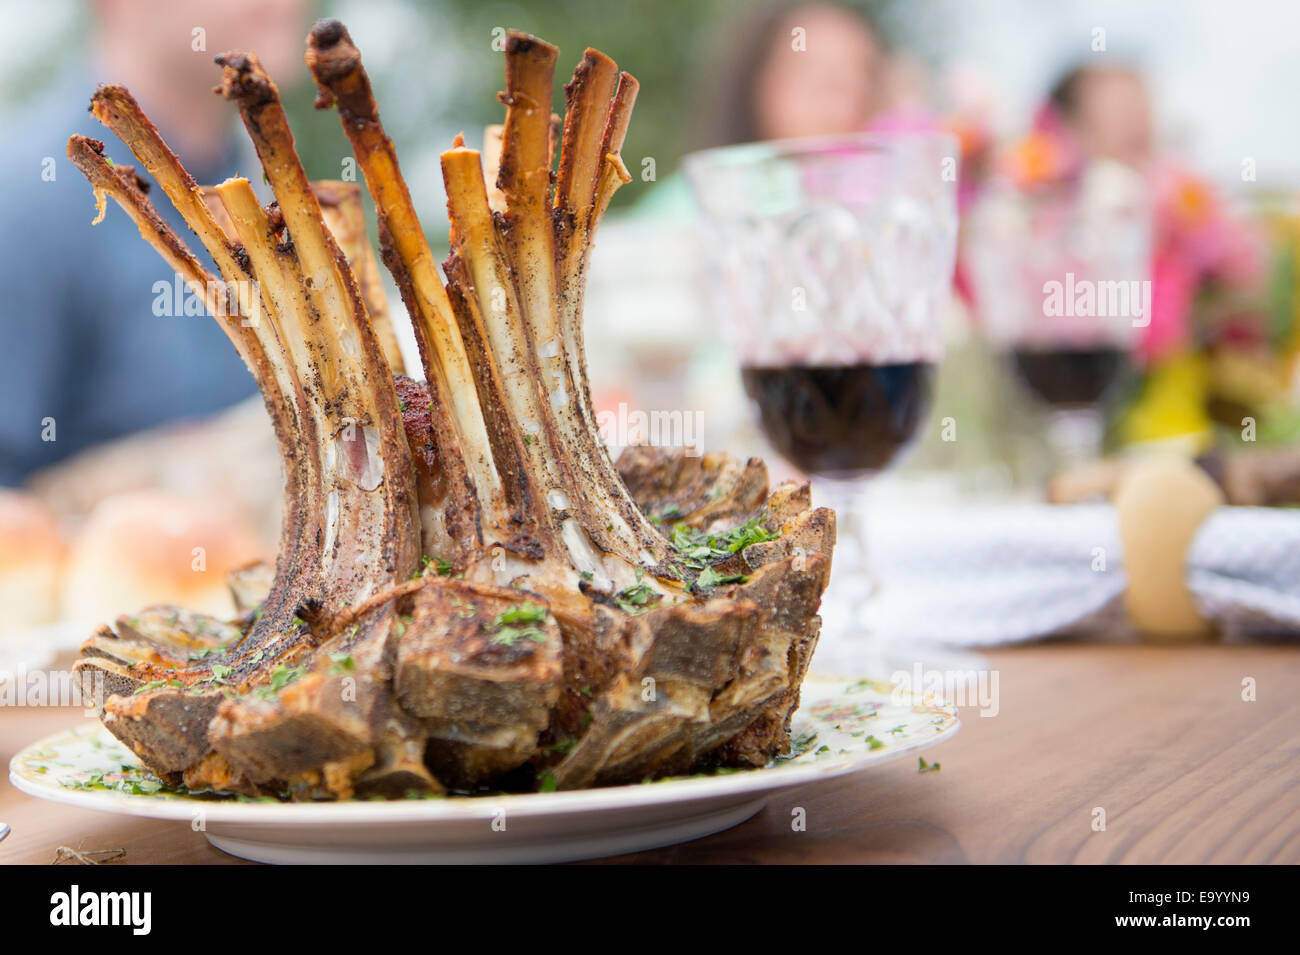 Rack of lamb on plate at family meal, close-up - Stock Image